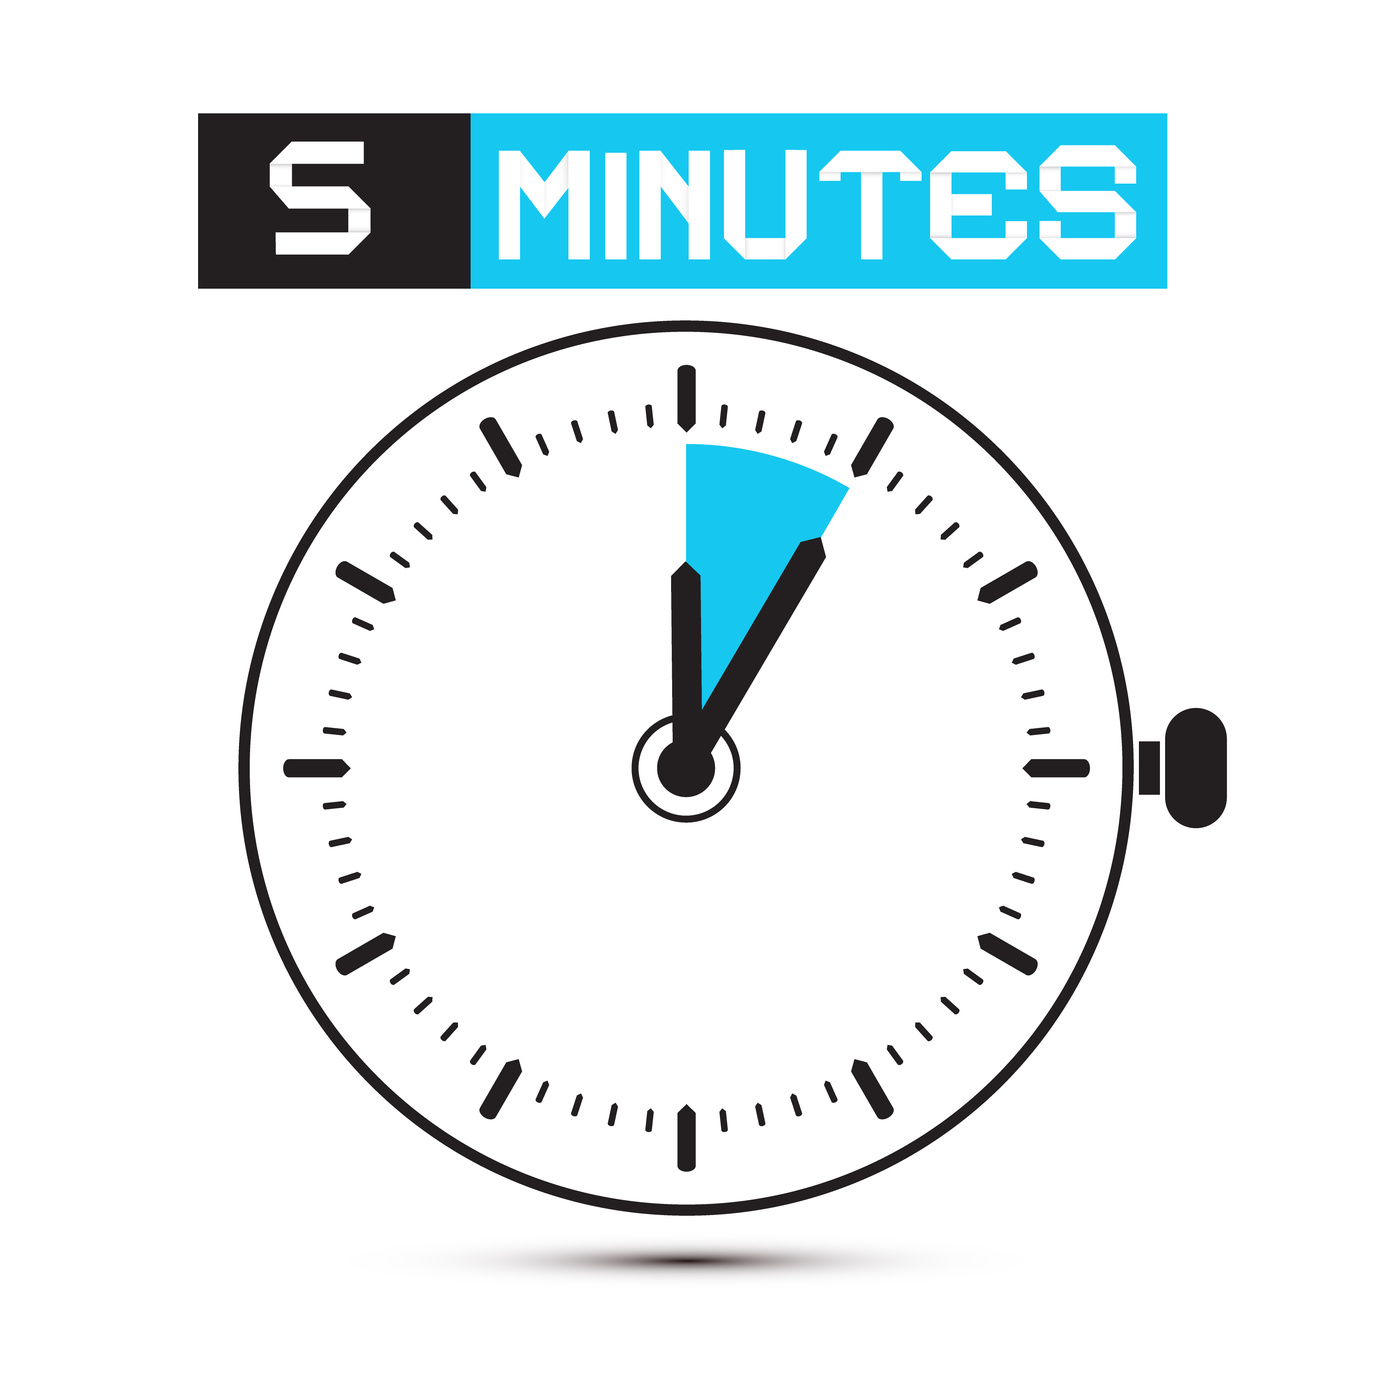 5 minutes 5 minutes alone is a song by american groove metal band pantera from their 1994 album far beyond driven the song also appears on the band's live albumthe song was released as downloadable content for rock revolution and rock band 3 and can be heard during a cut-scene in tom clancy's ghost recon: future soldier.